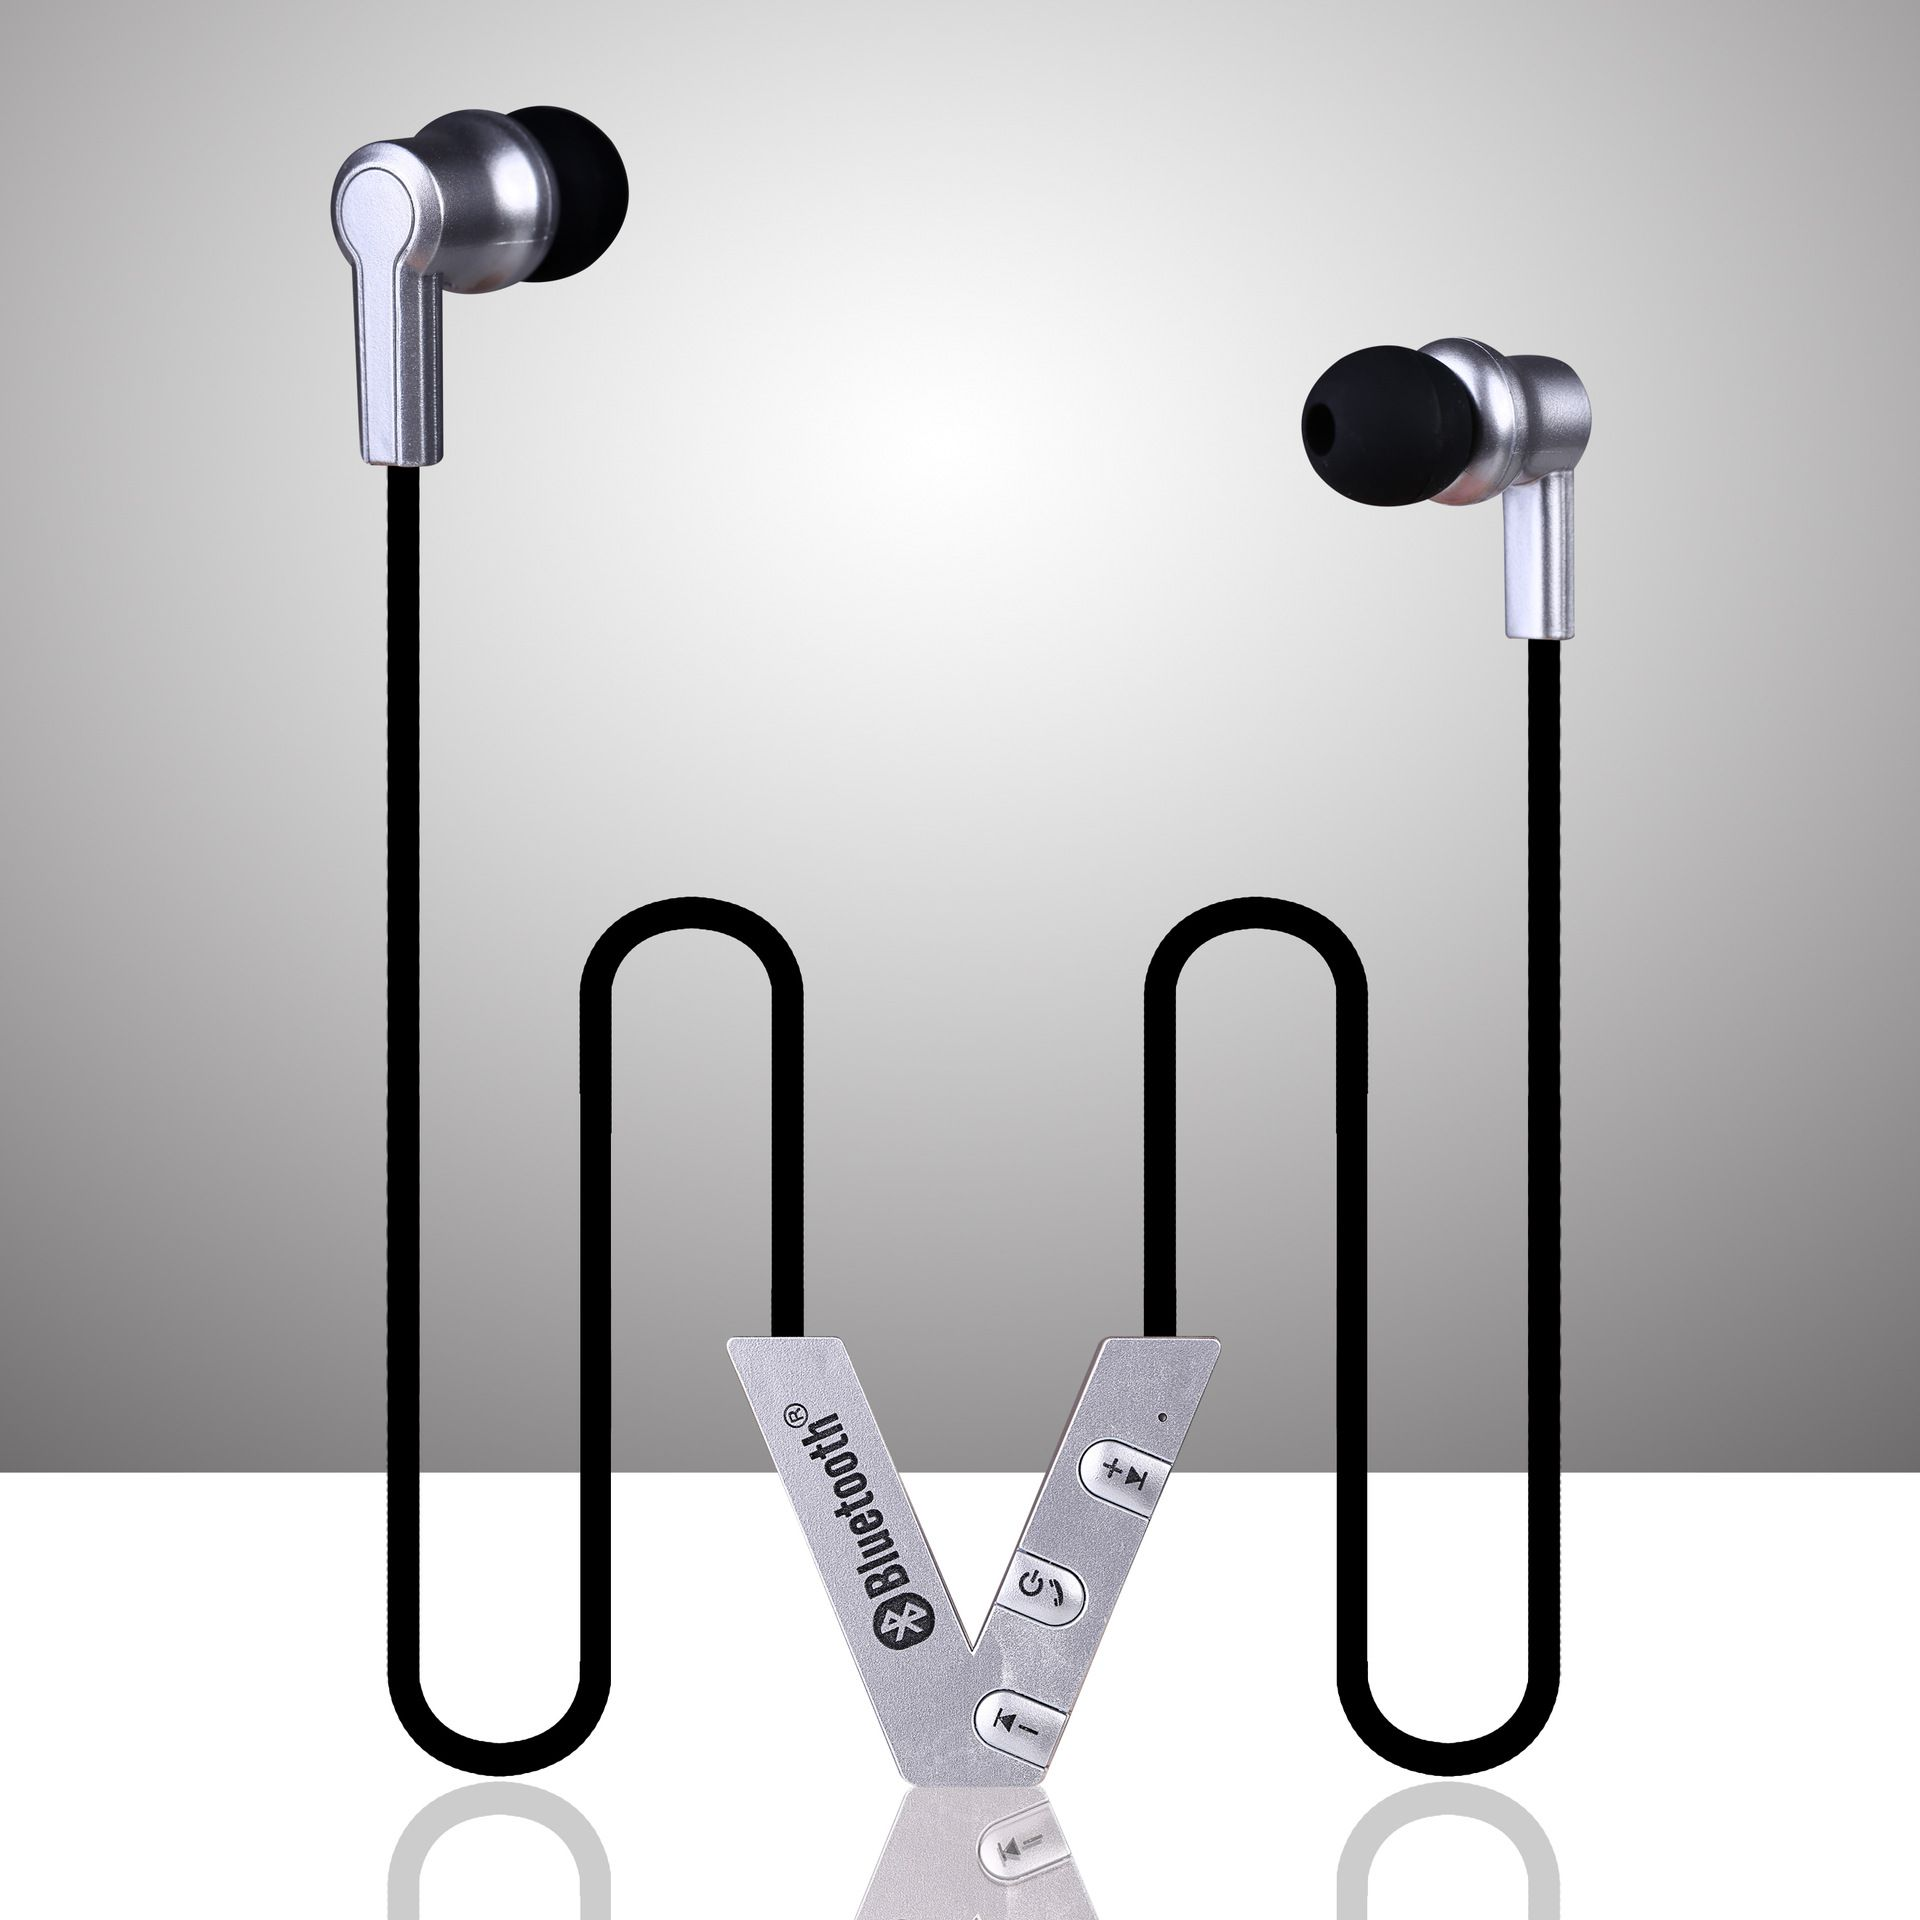 undefined Bluetooth audio, Earbuds, Portable audio